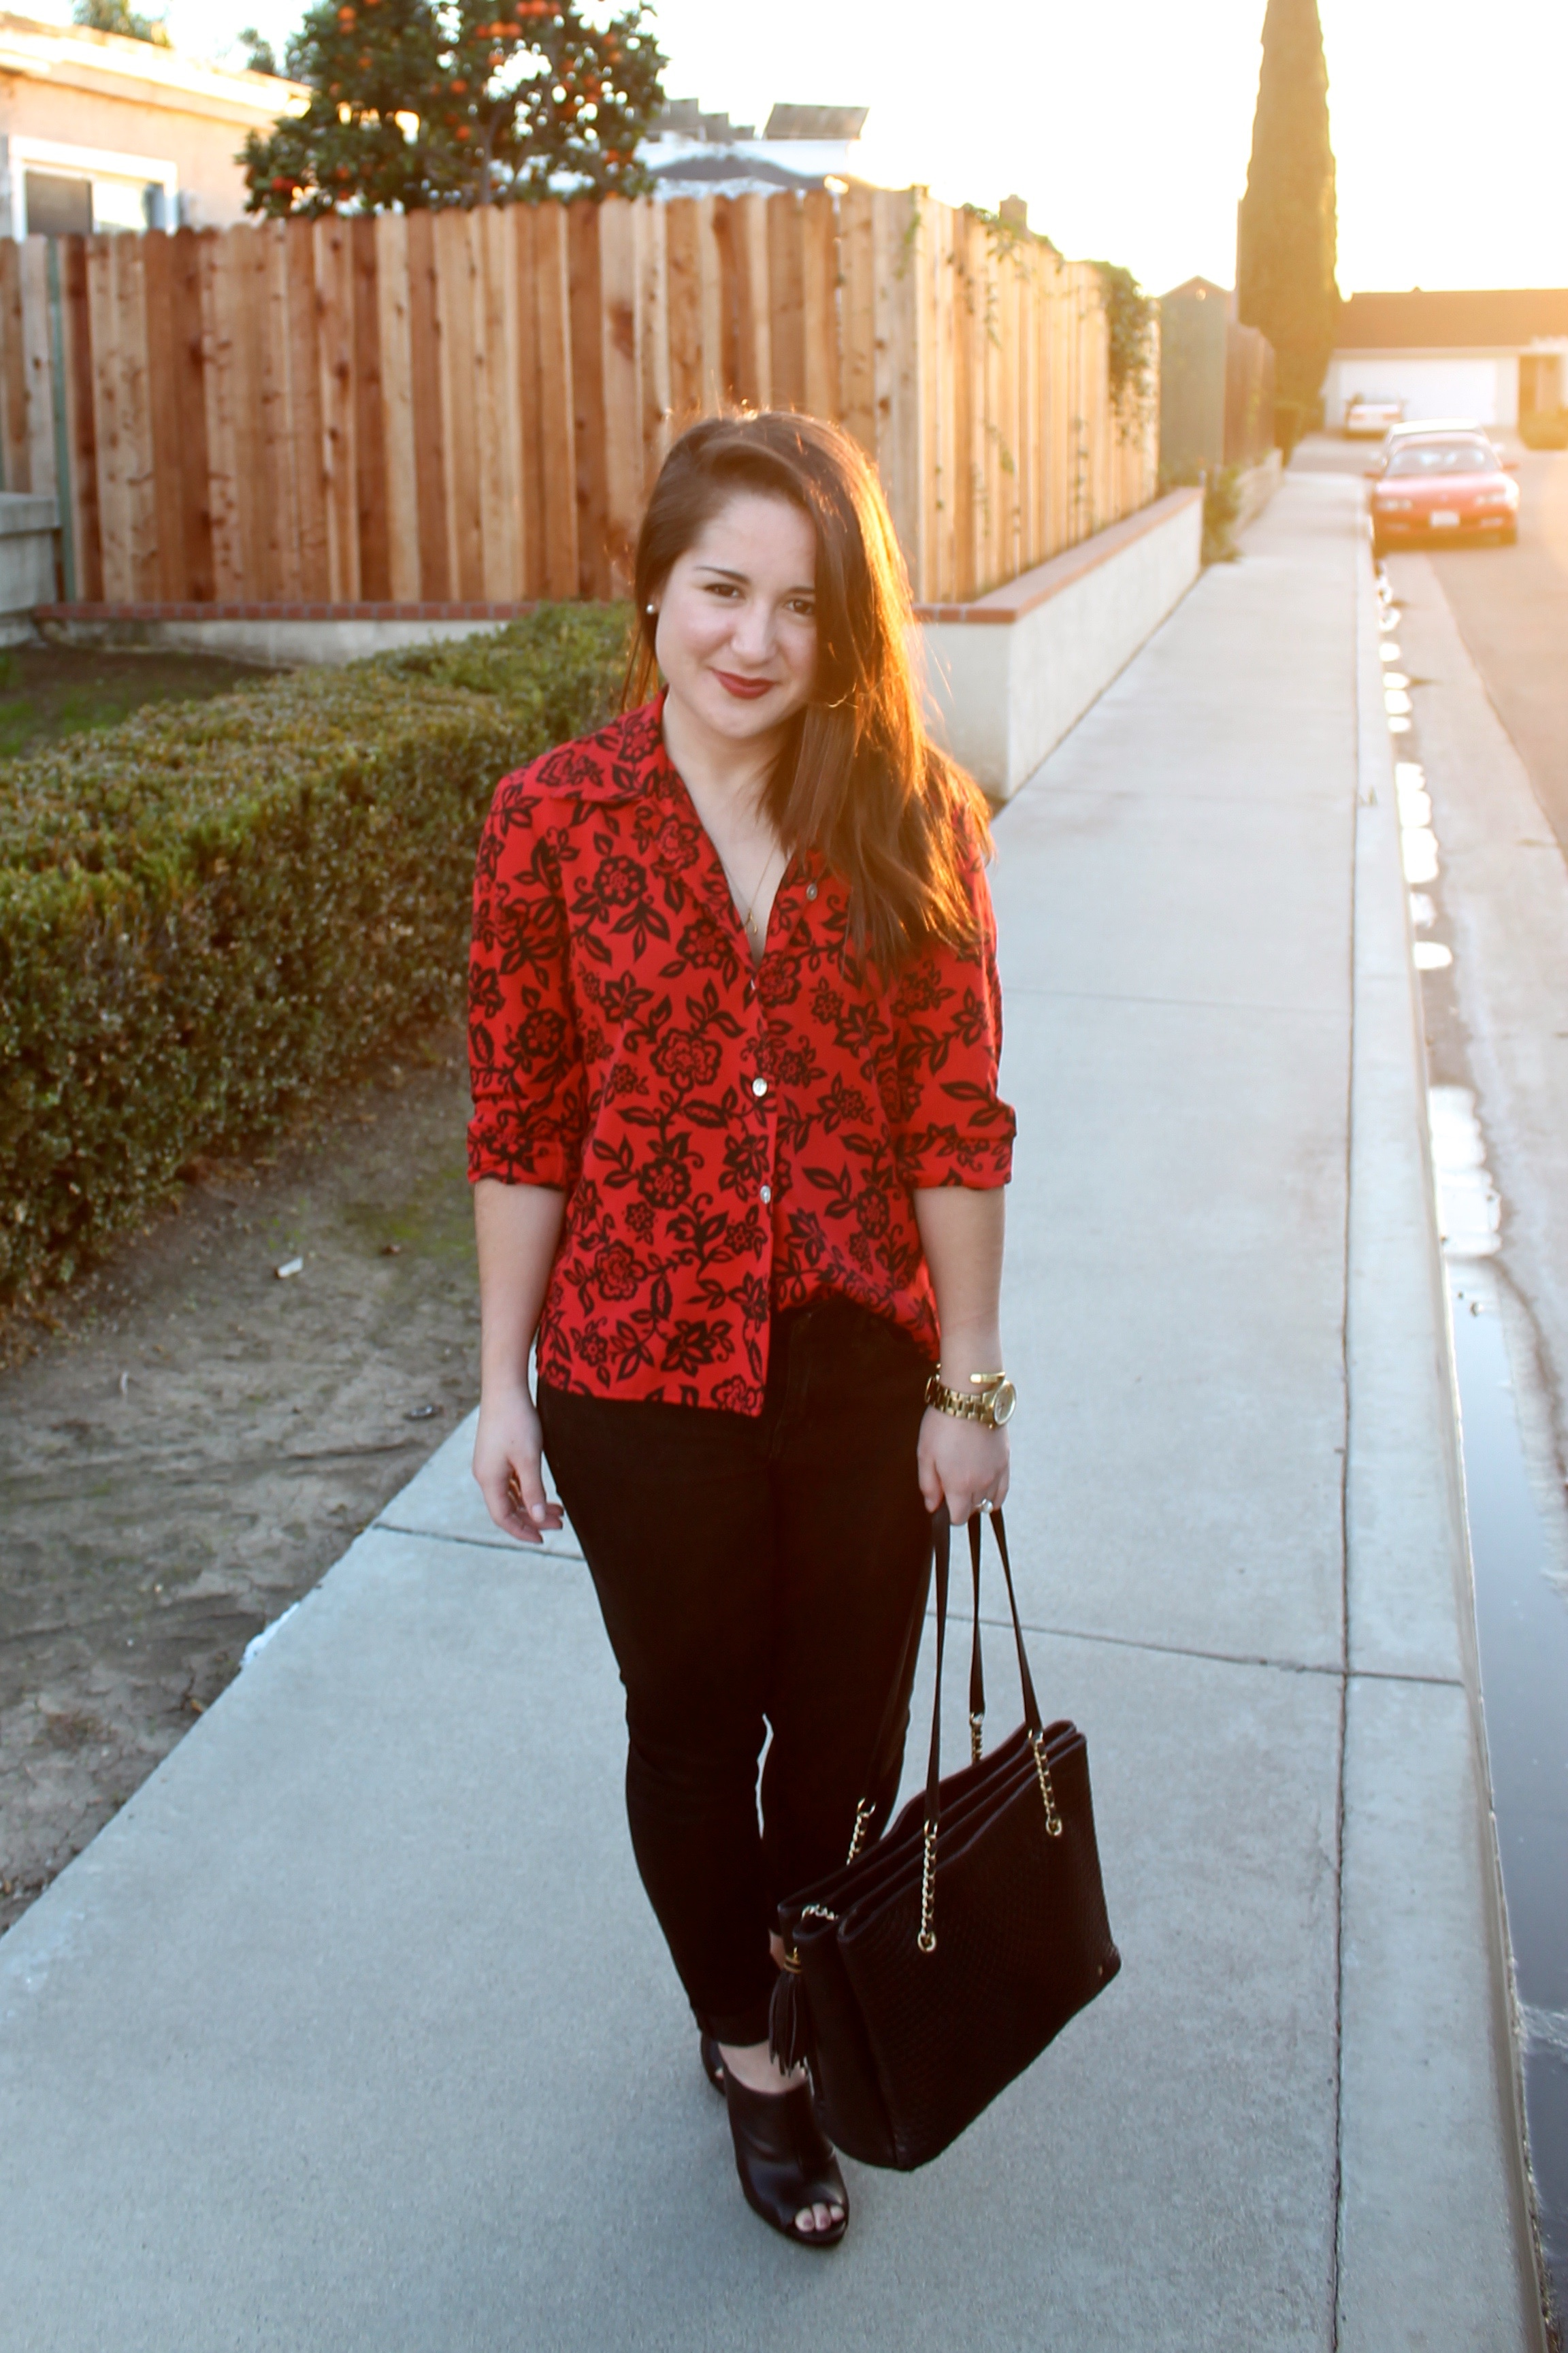 Christmas #outfit idea: red printed blouse + black denim #style